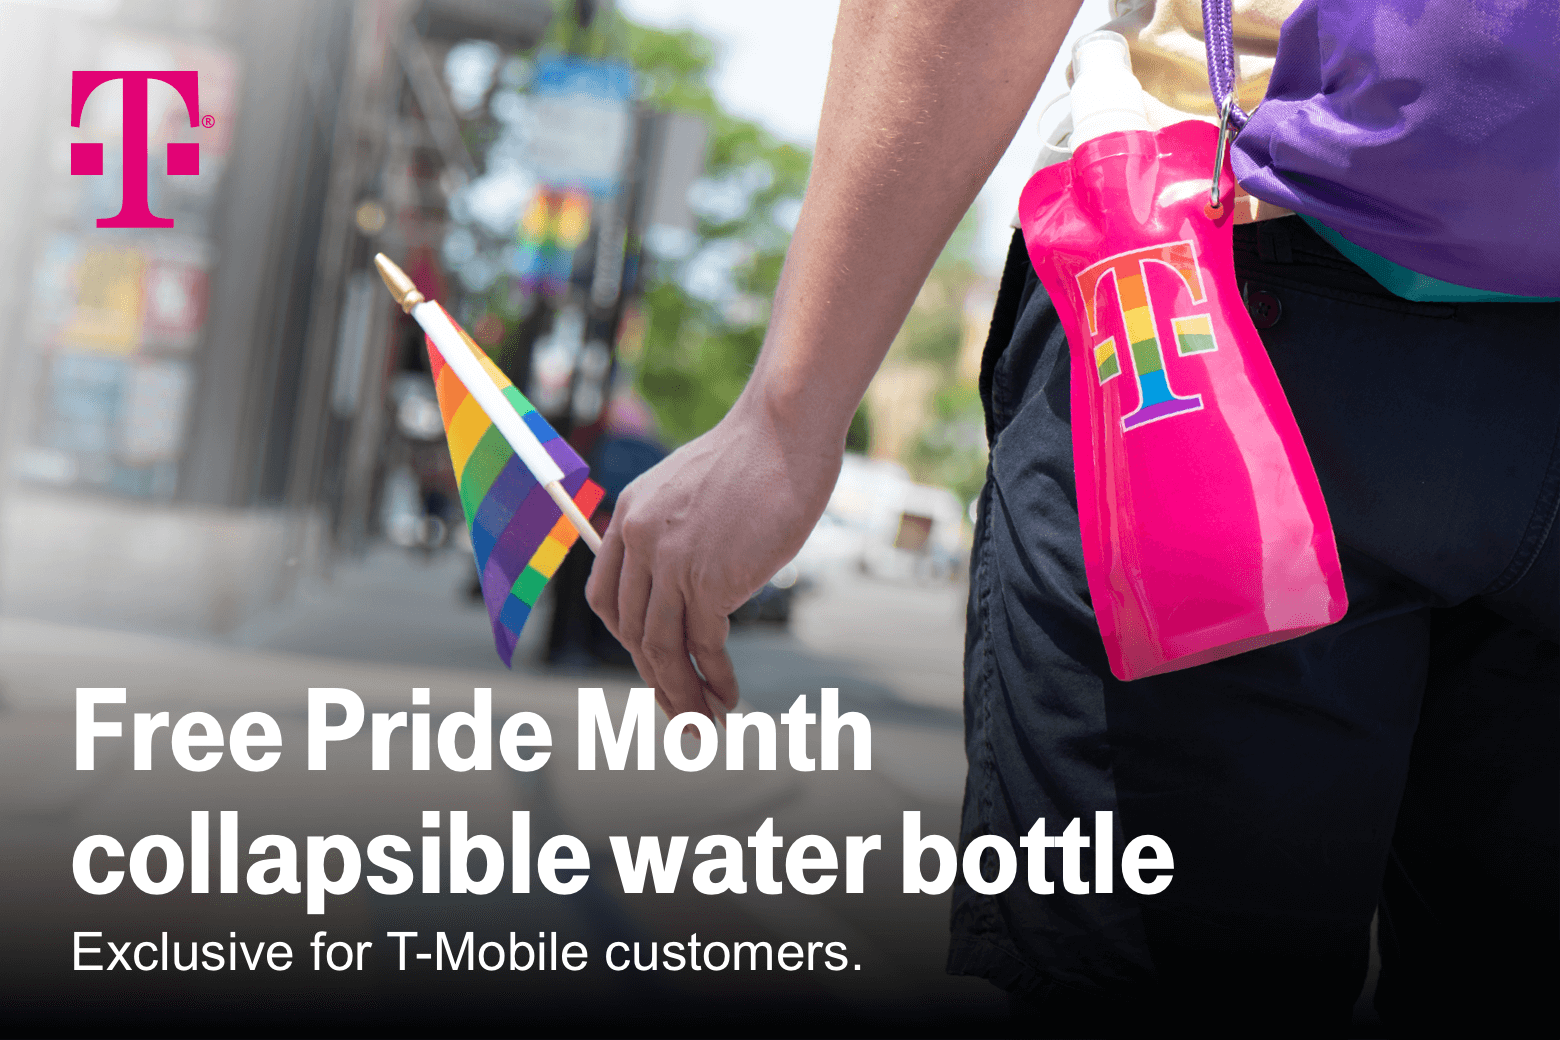 T-Mobile. Free Pride Month collapsible water bottle. Exclusive for T-Mobile customers.